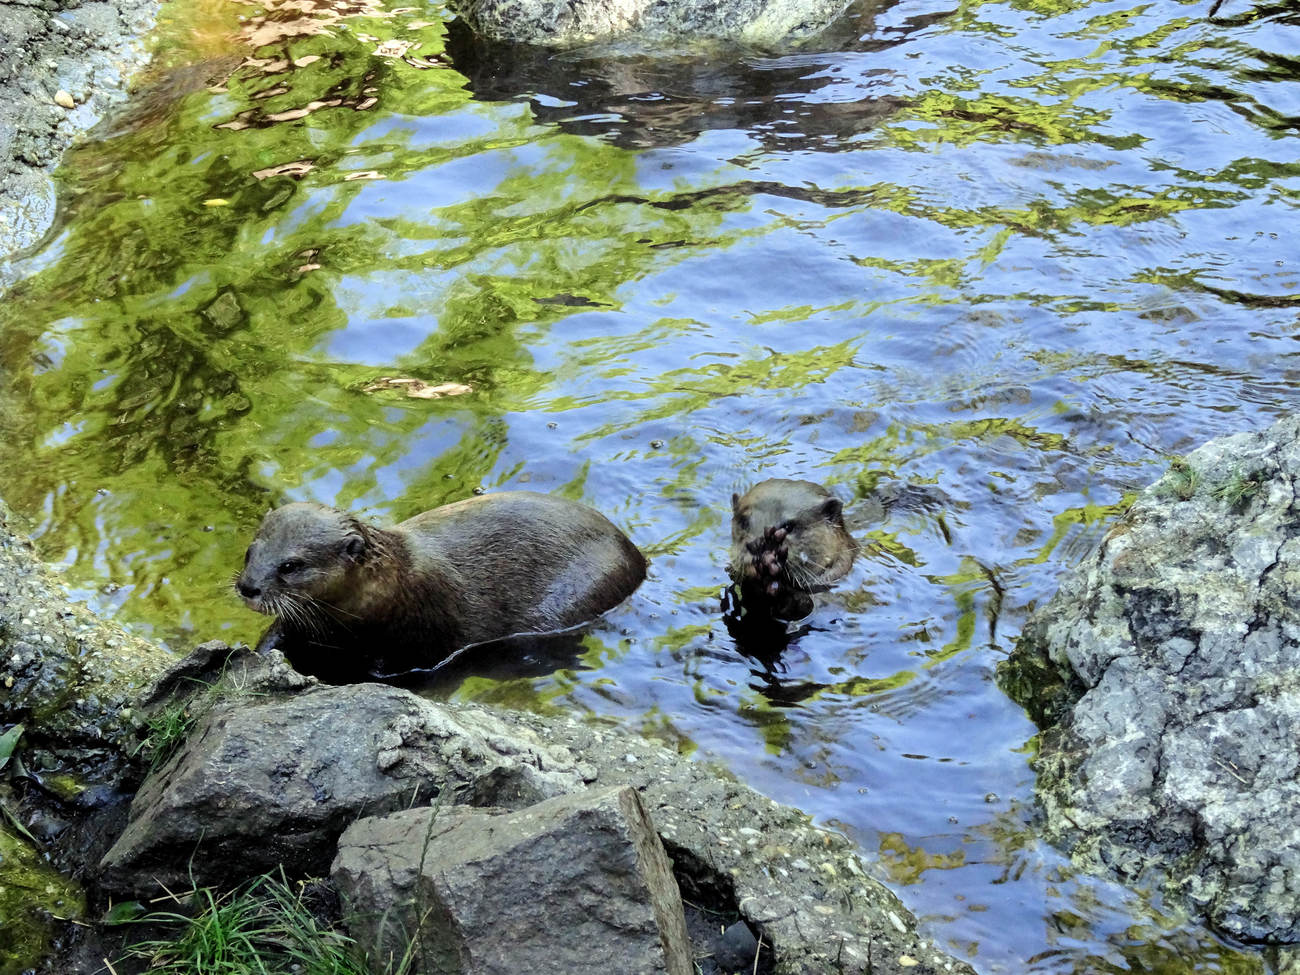 Loutre cendree - Asian small-clawed otter 2 by kordouane